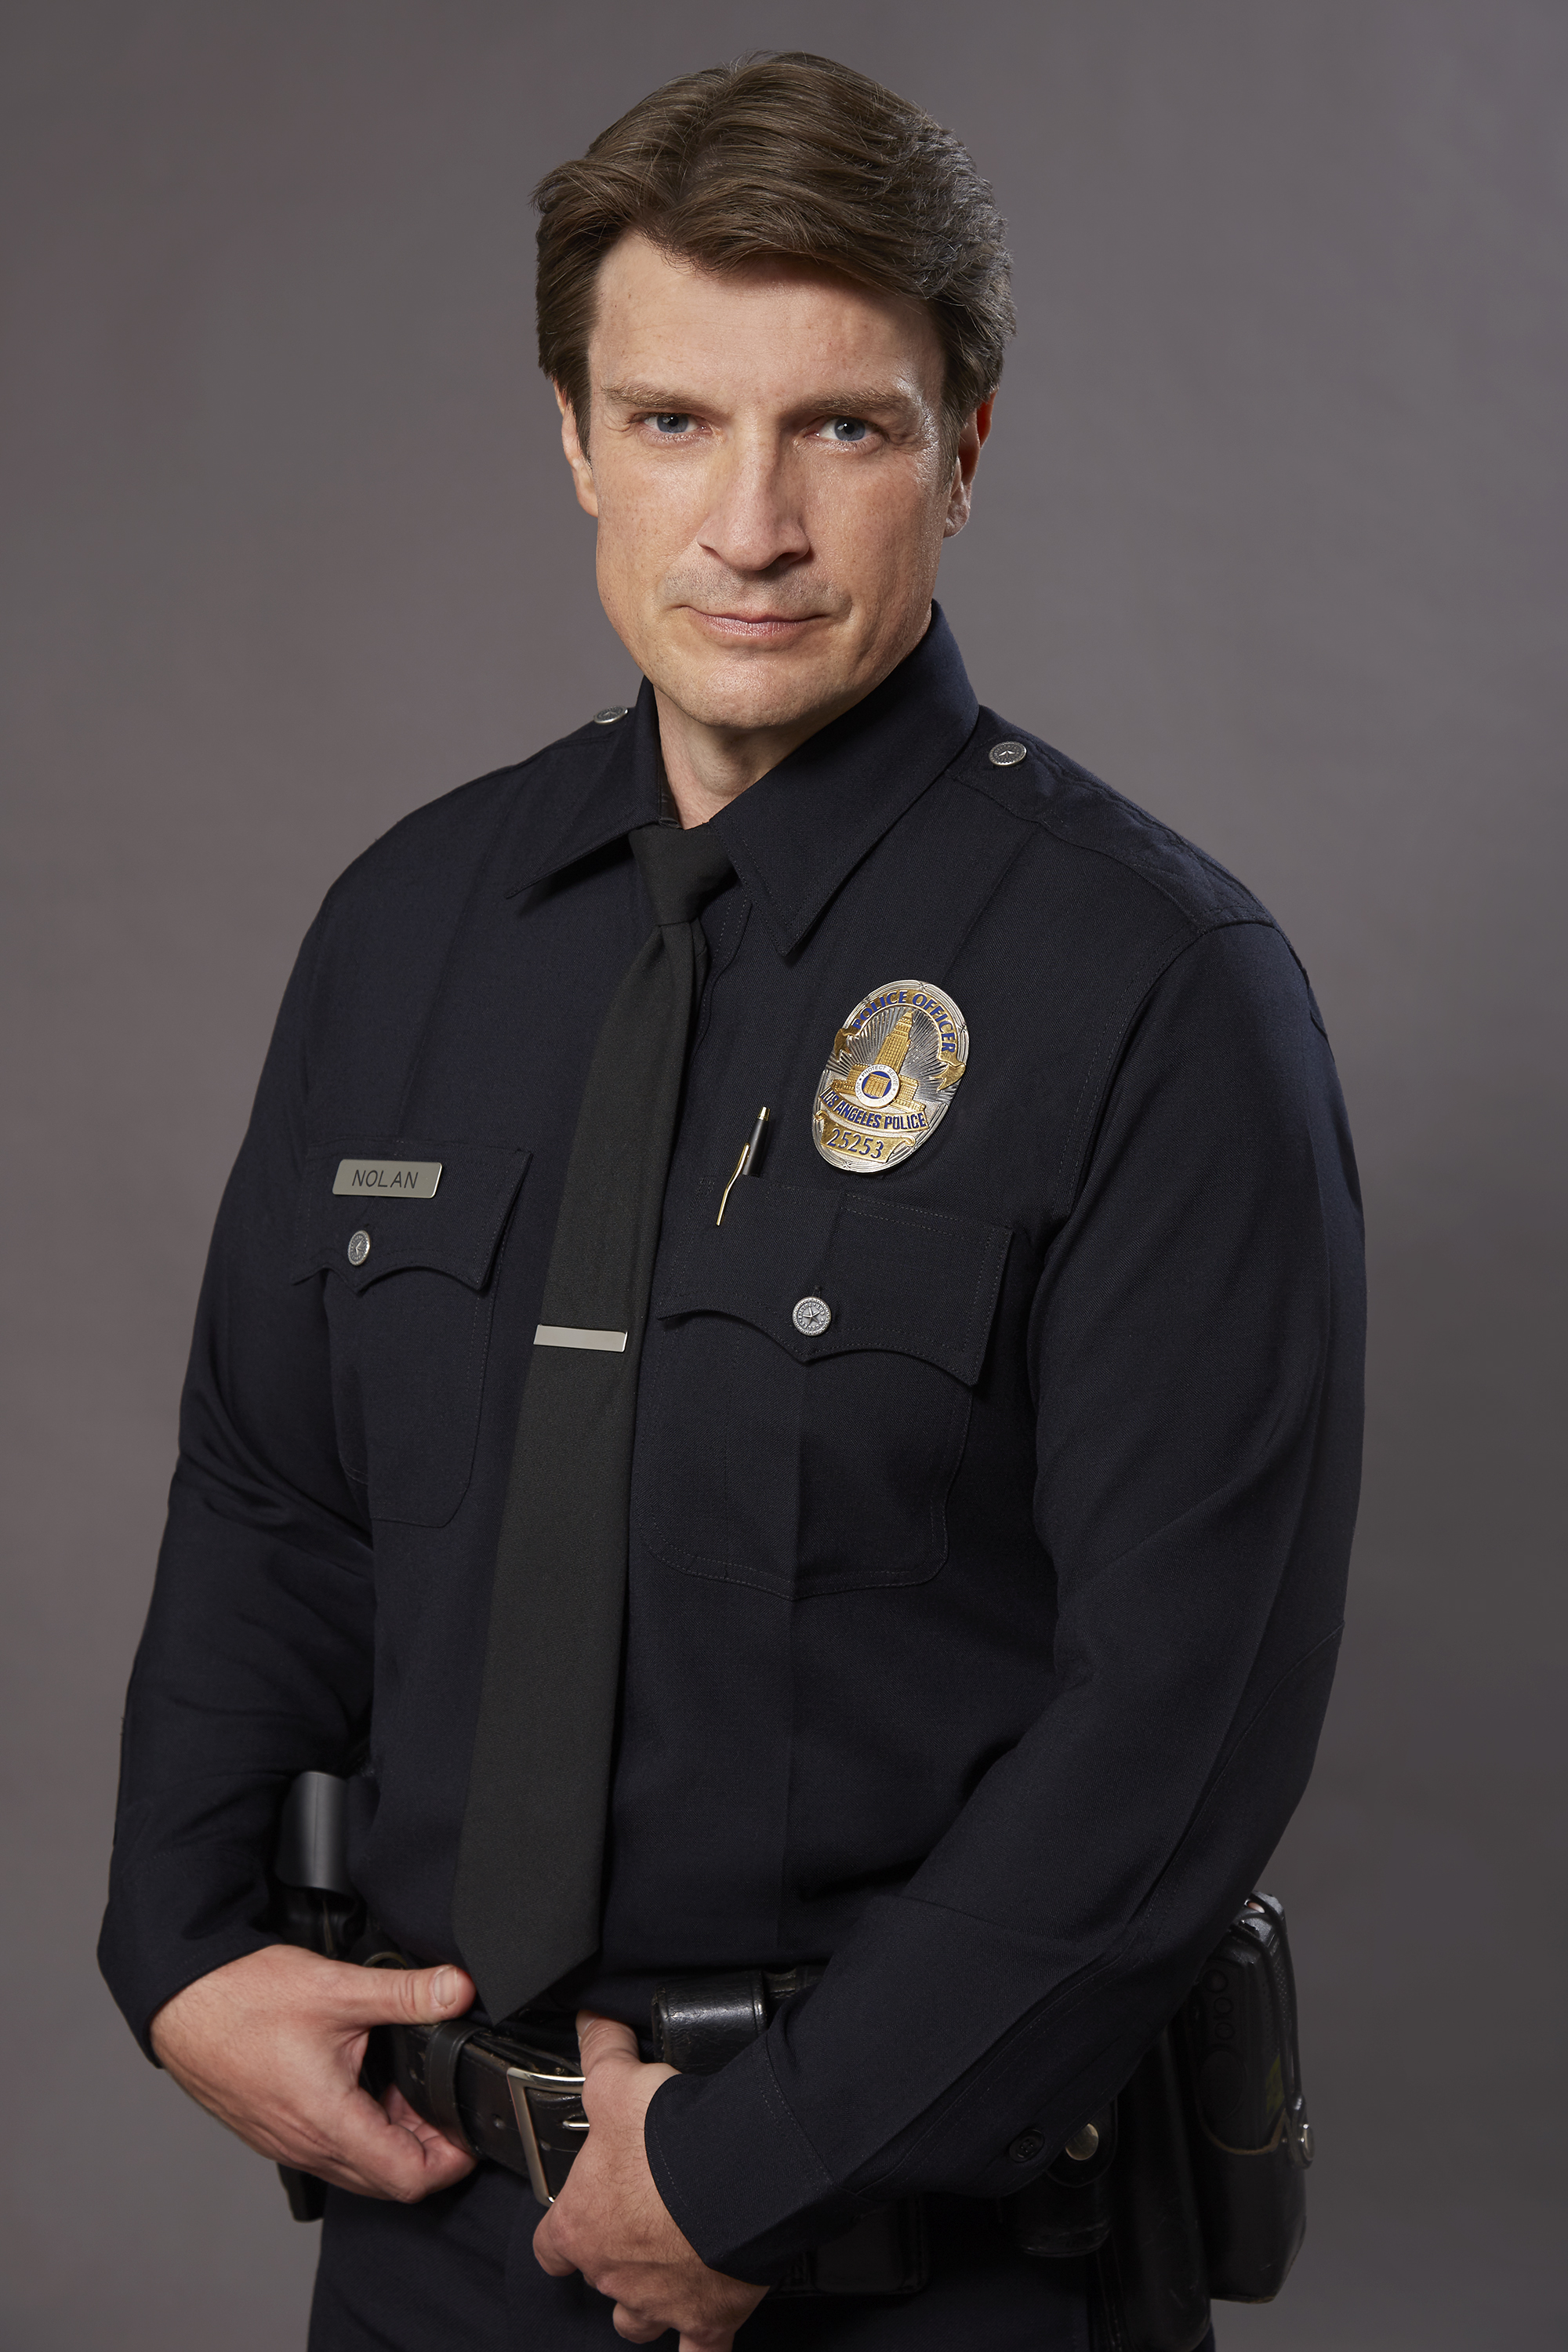 The Rookie Starring Nathan Fillion Premieres Tuesday October